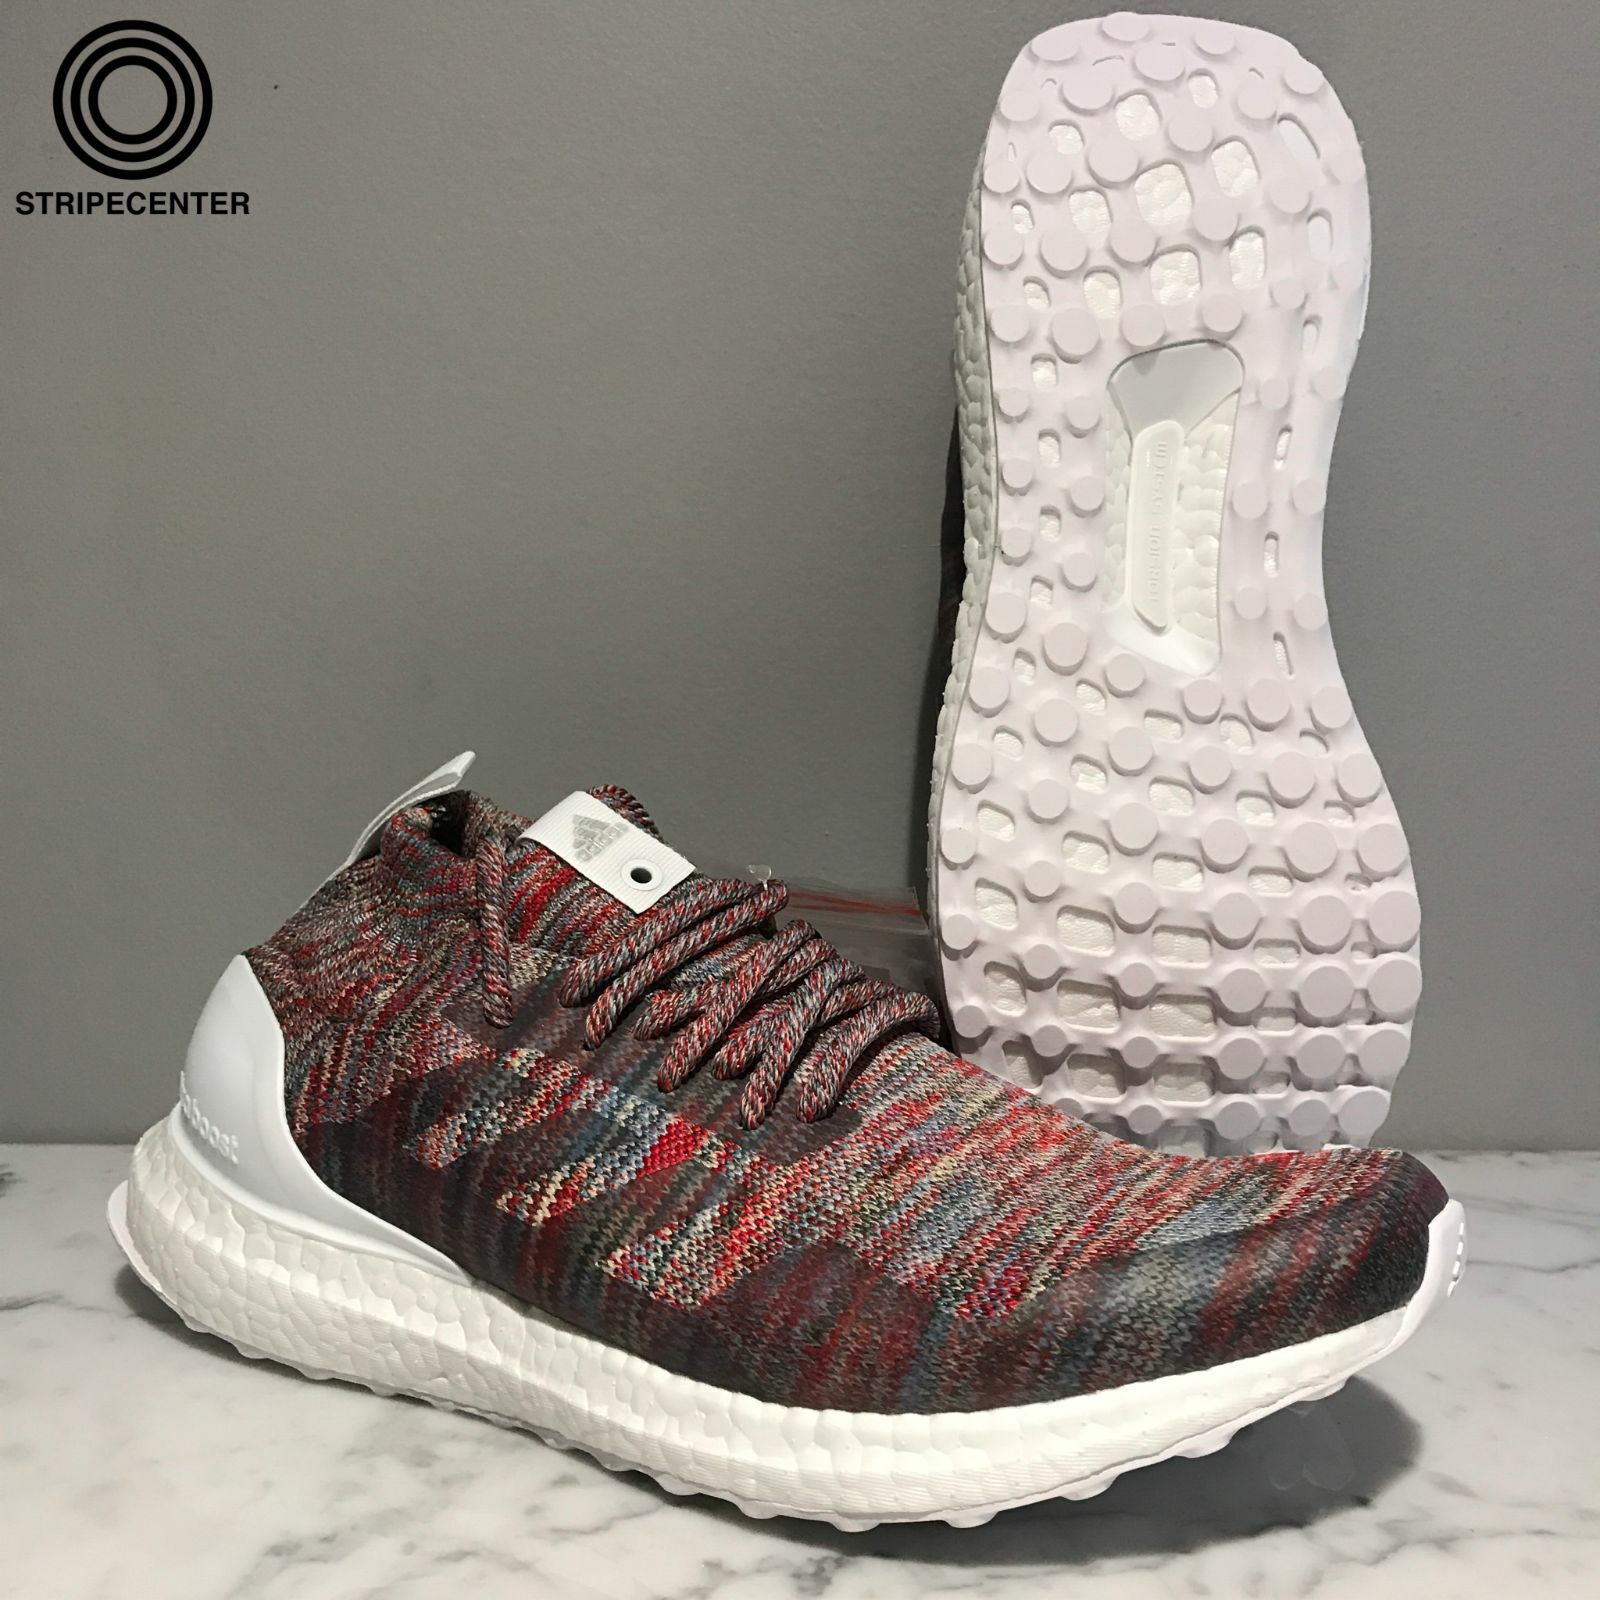 Adidas ULTRA BOOST MID 'KITH' - BY2592 - FTWHITE CBLACK CLABRO